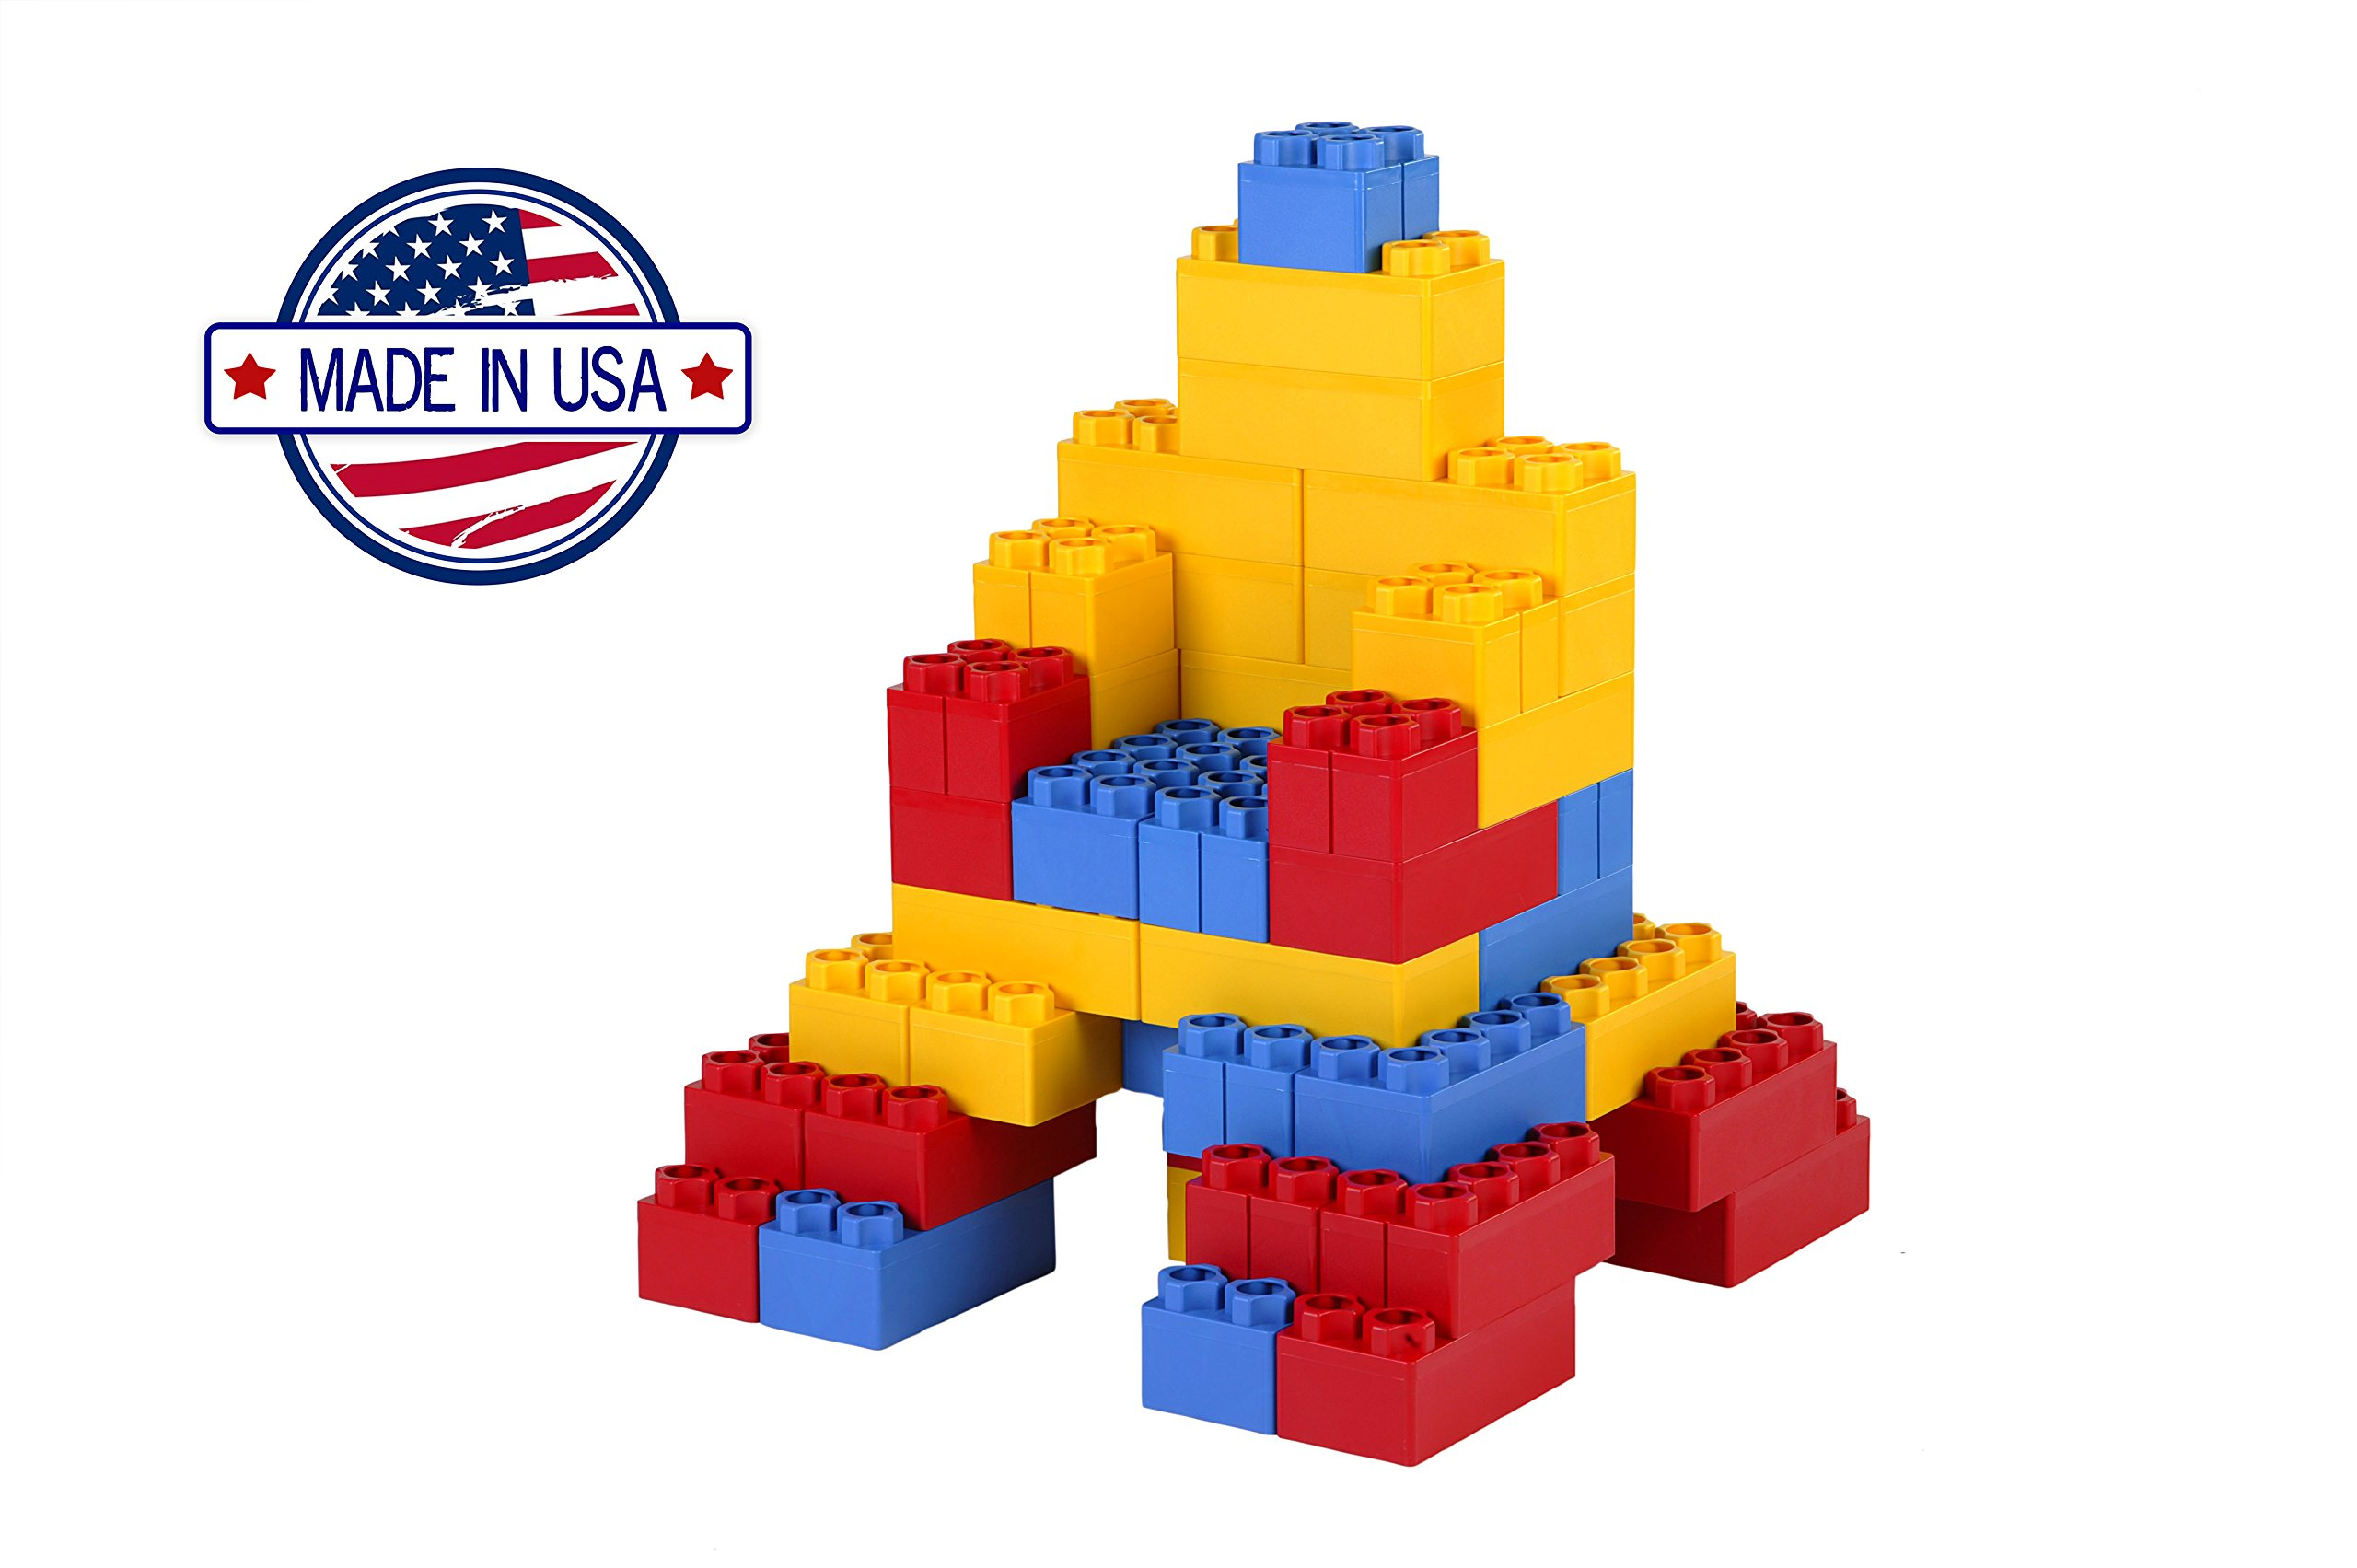 96pc Jumbo Blocks - Standard Set (Made in the USA) by Kids Adventure (Image #3)